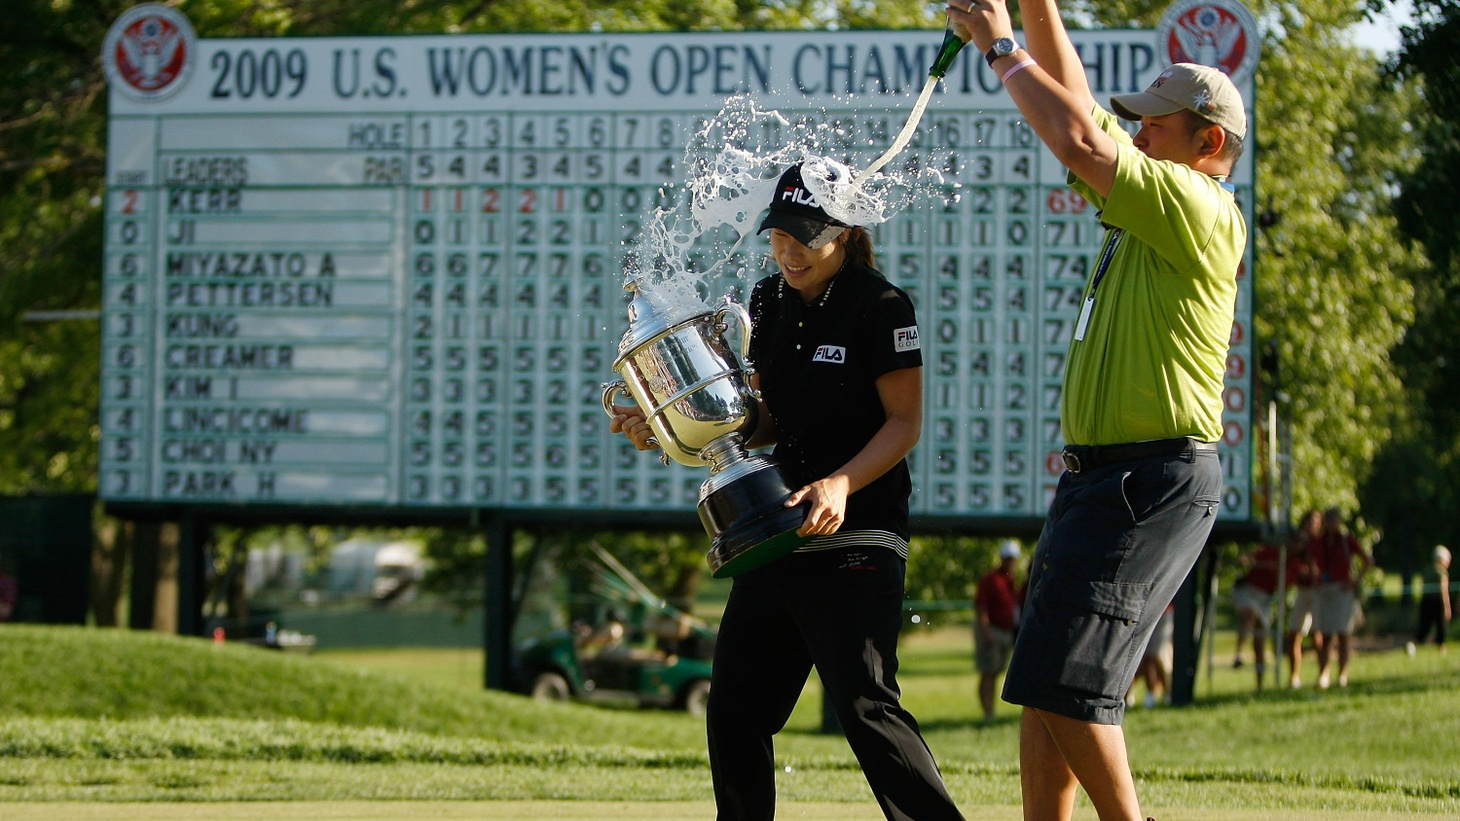 For women, golf was the fist successful professional sport in this country. Just on the heels of World War II, former track Olympian Babe Didrickson Zaharias, Patty Berg, and Louise Suggs may have had to organize their tournaments themselves, but they became household names and set the stage for the first accepted sport where women could make a living playing their passion...